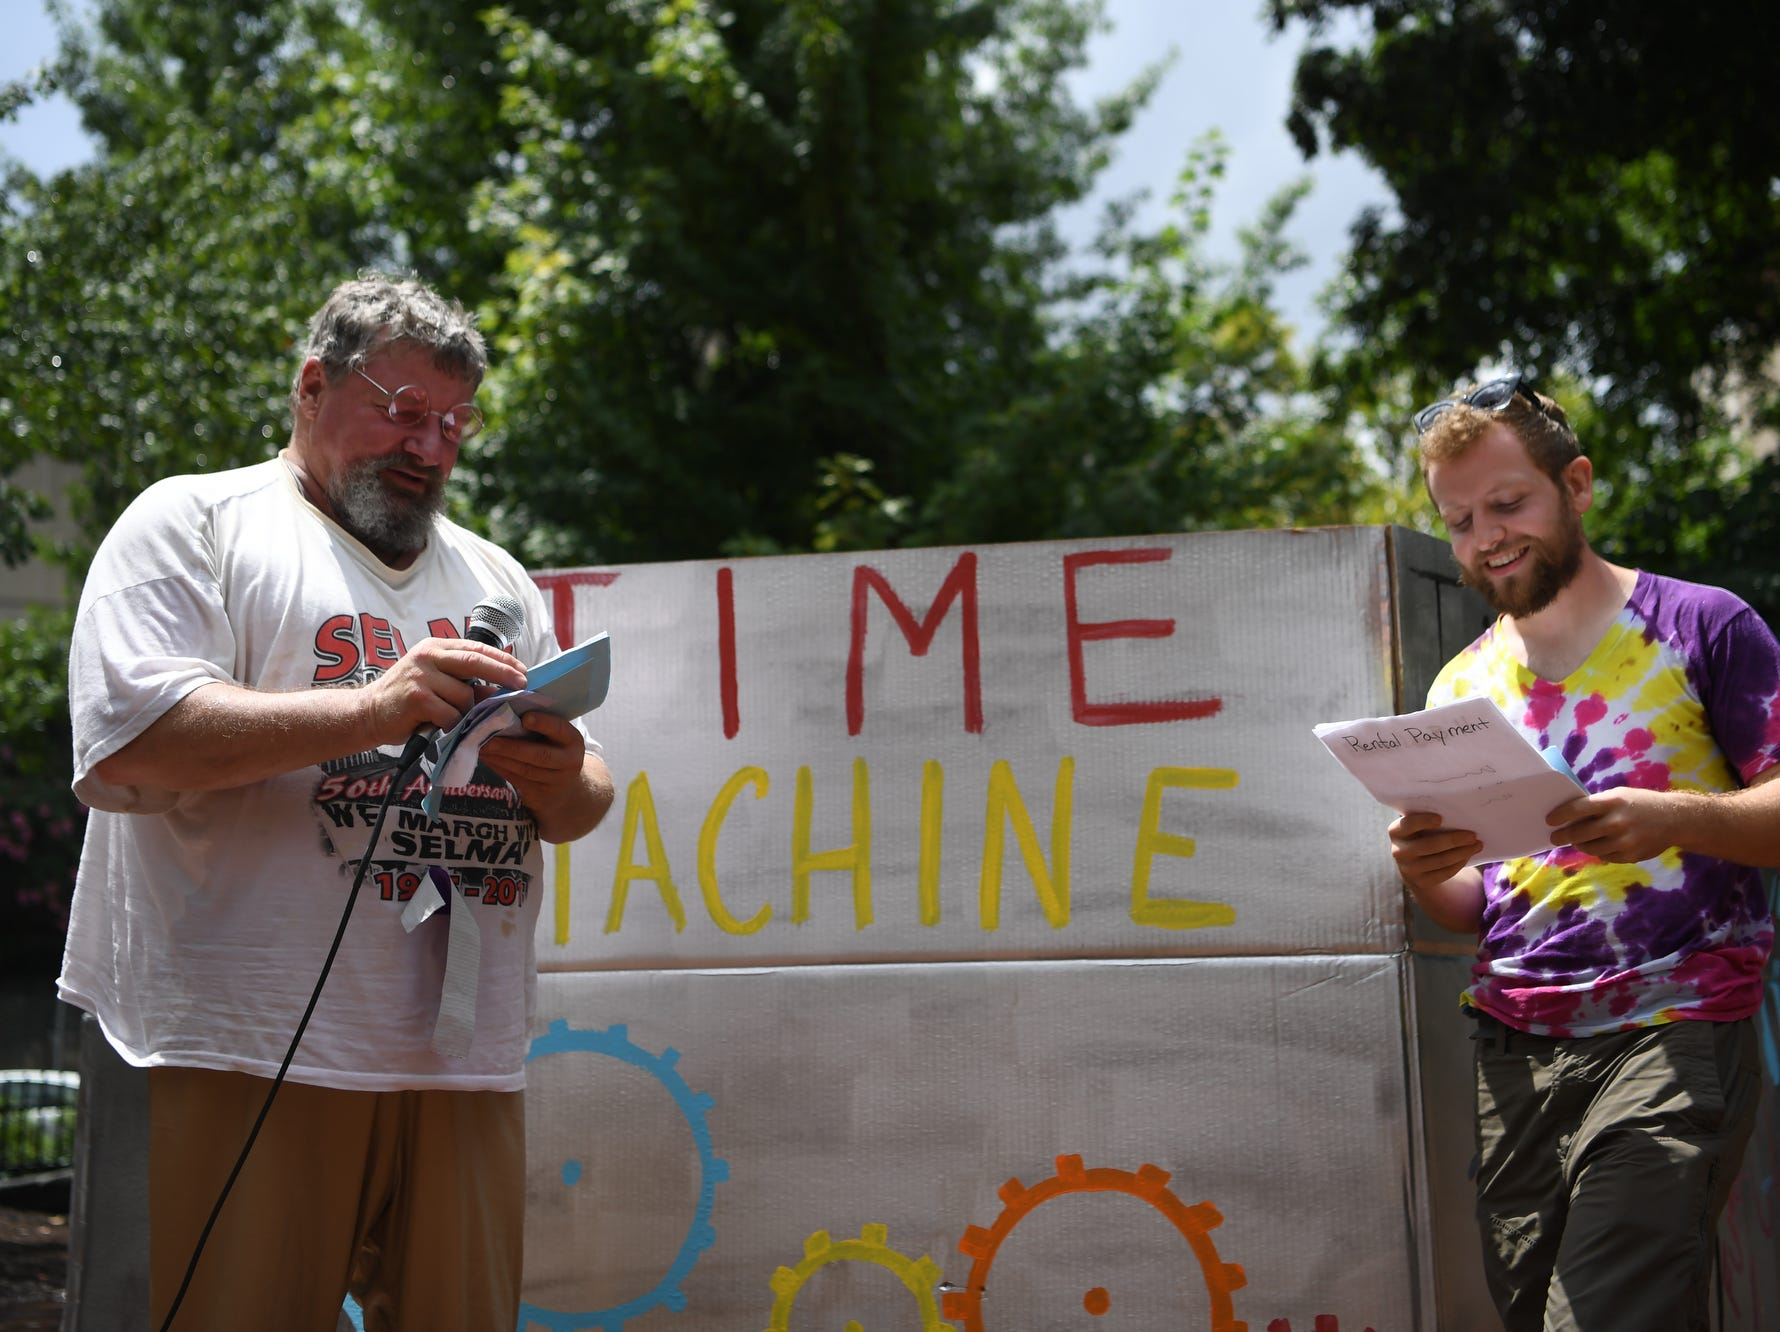 """People gathered at Pritchard Park to rally for raising wages in North Carolina July 24, 2018, the anniversary of the last wage increase, which was in 2009. The group chanted """"we can't survive on $7.25,"""" the current minimum wage in North Carolina and called to support businesses that display """"living wage certified"""" stickers in their windows."""